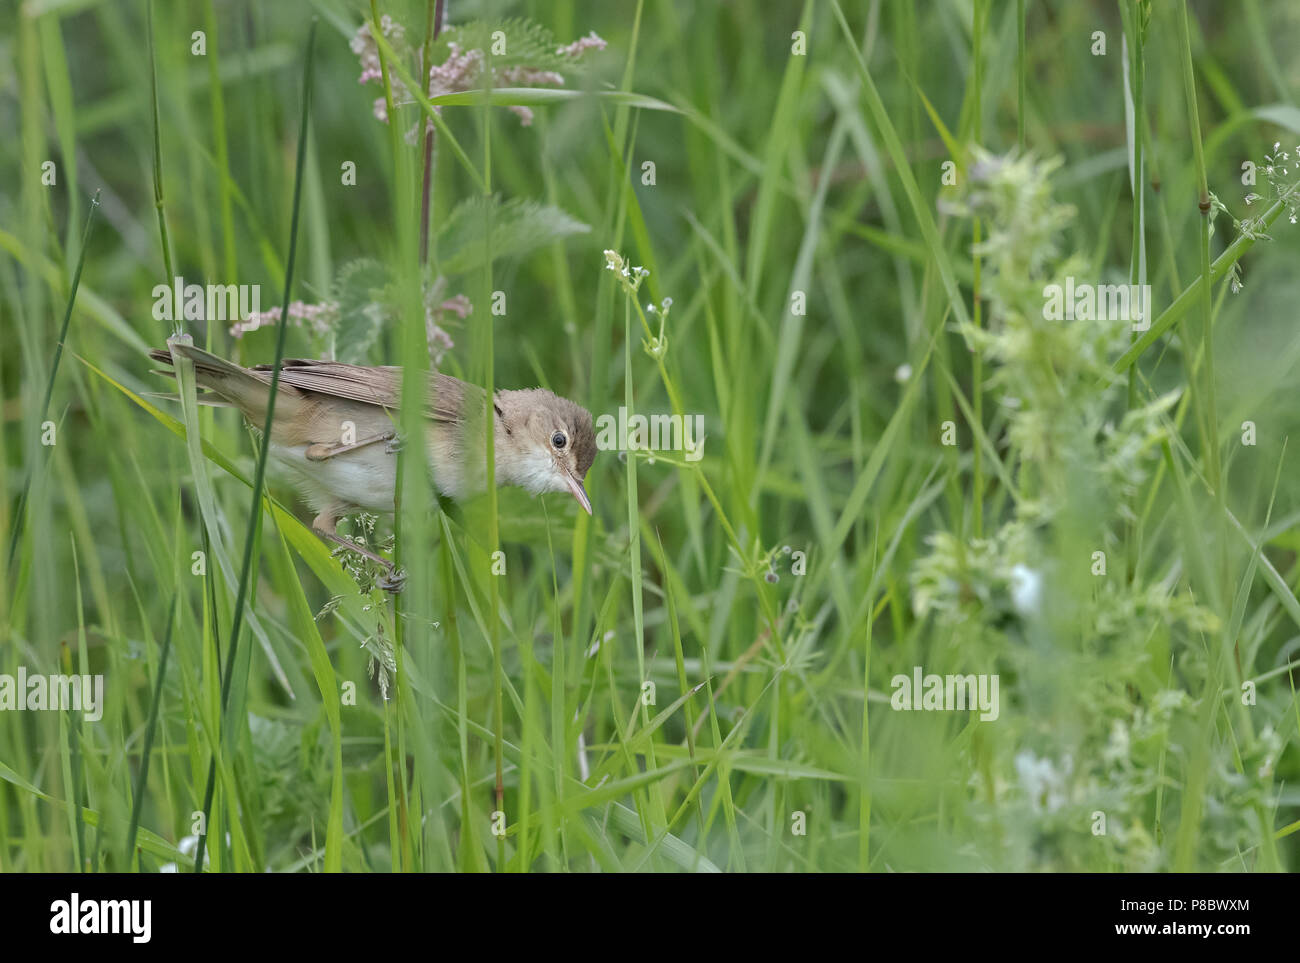 Reed Warbler-Acrocephalus scirpaceus searches for food. Uk - Stock Image